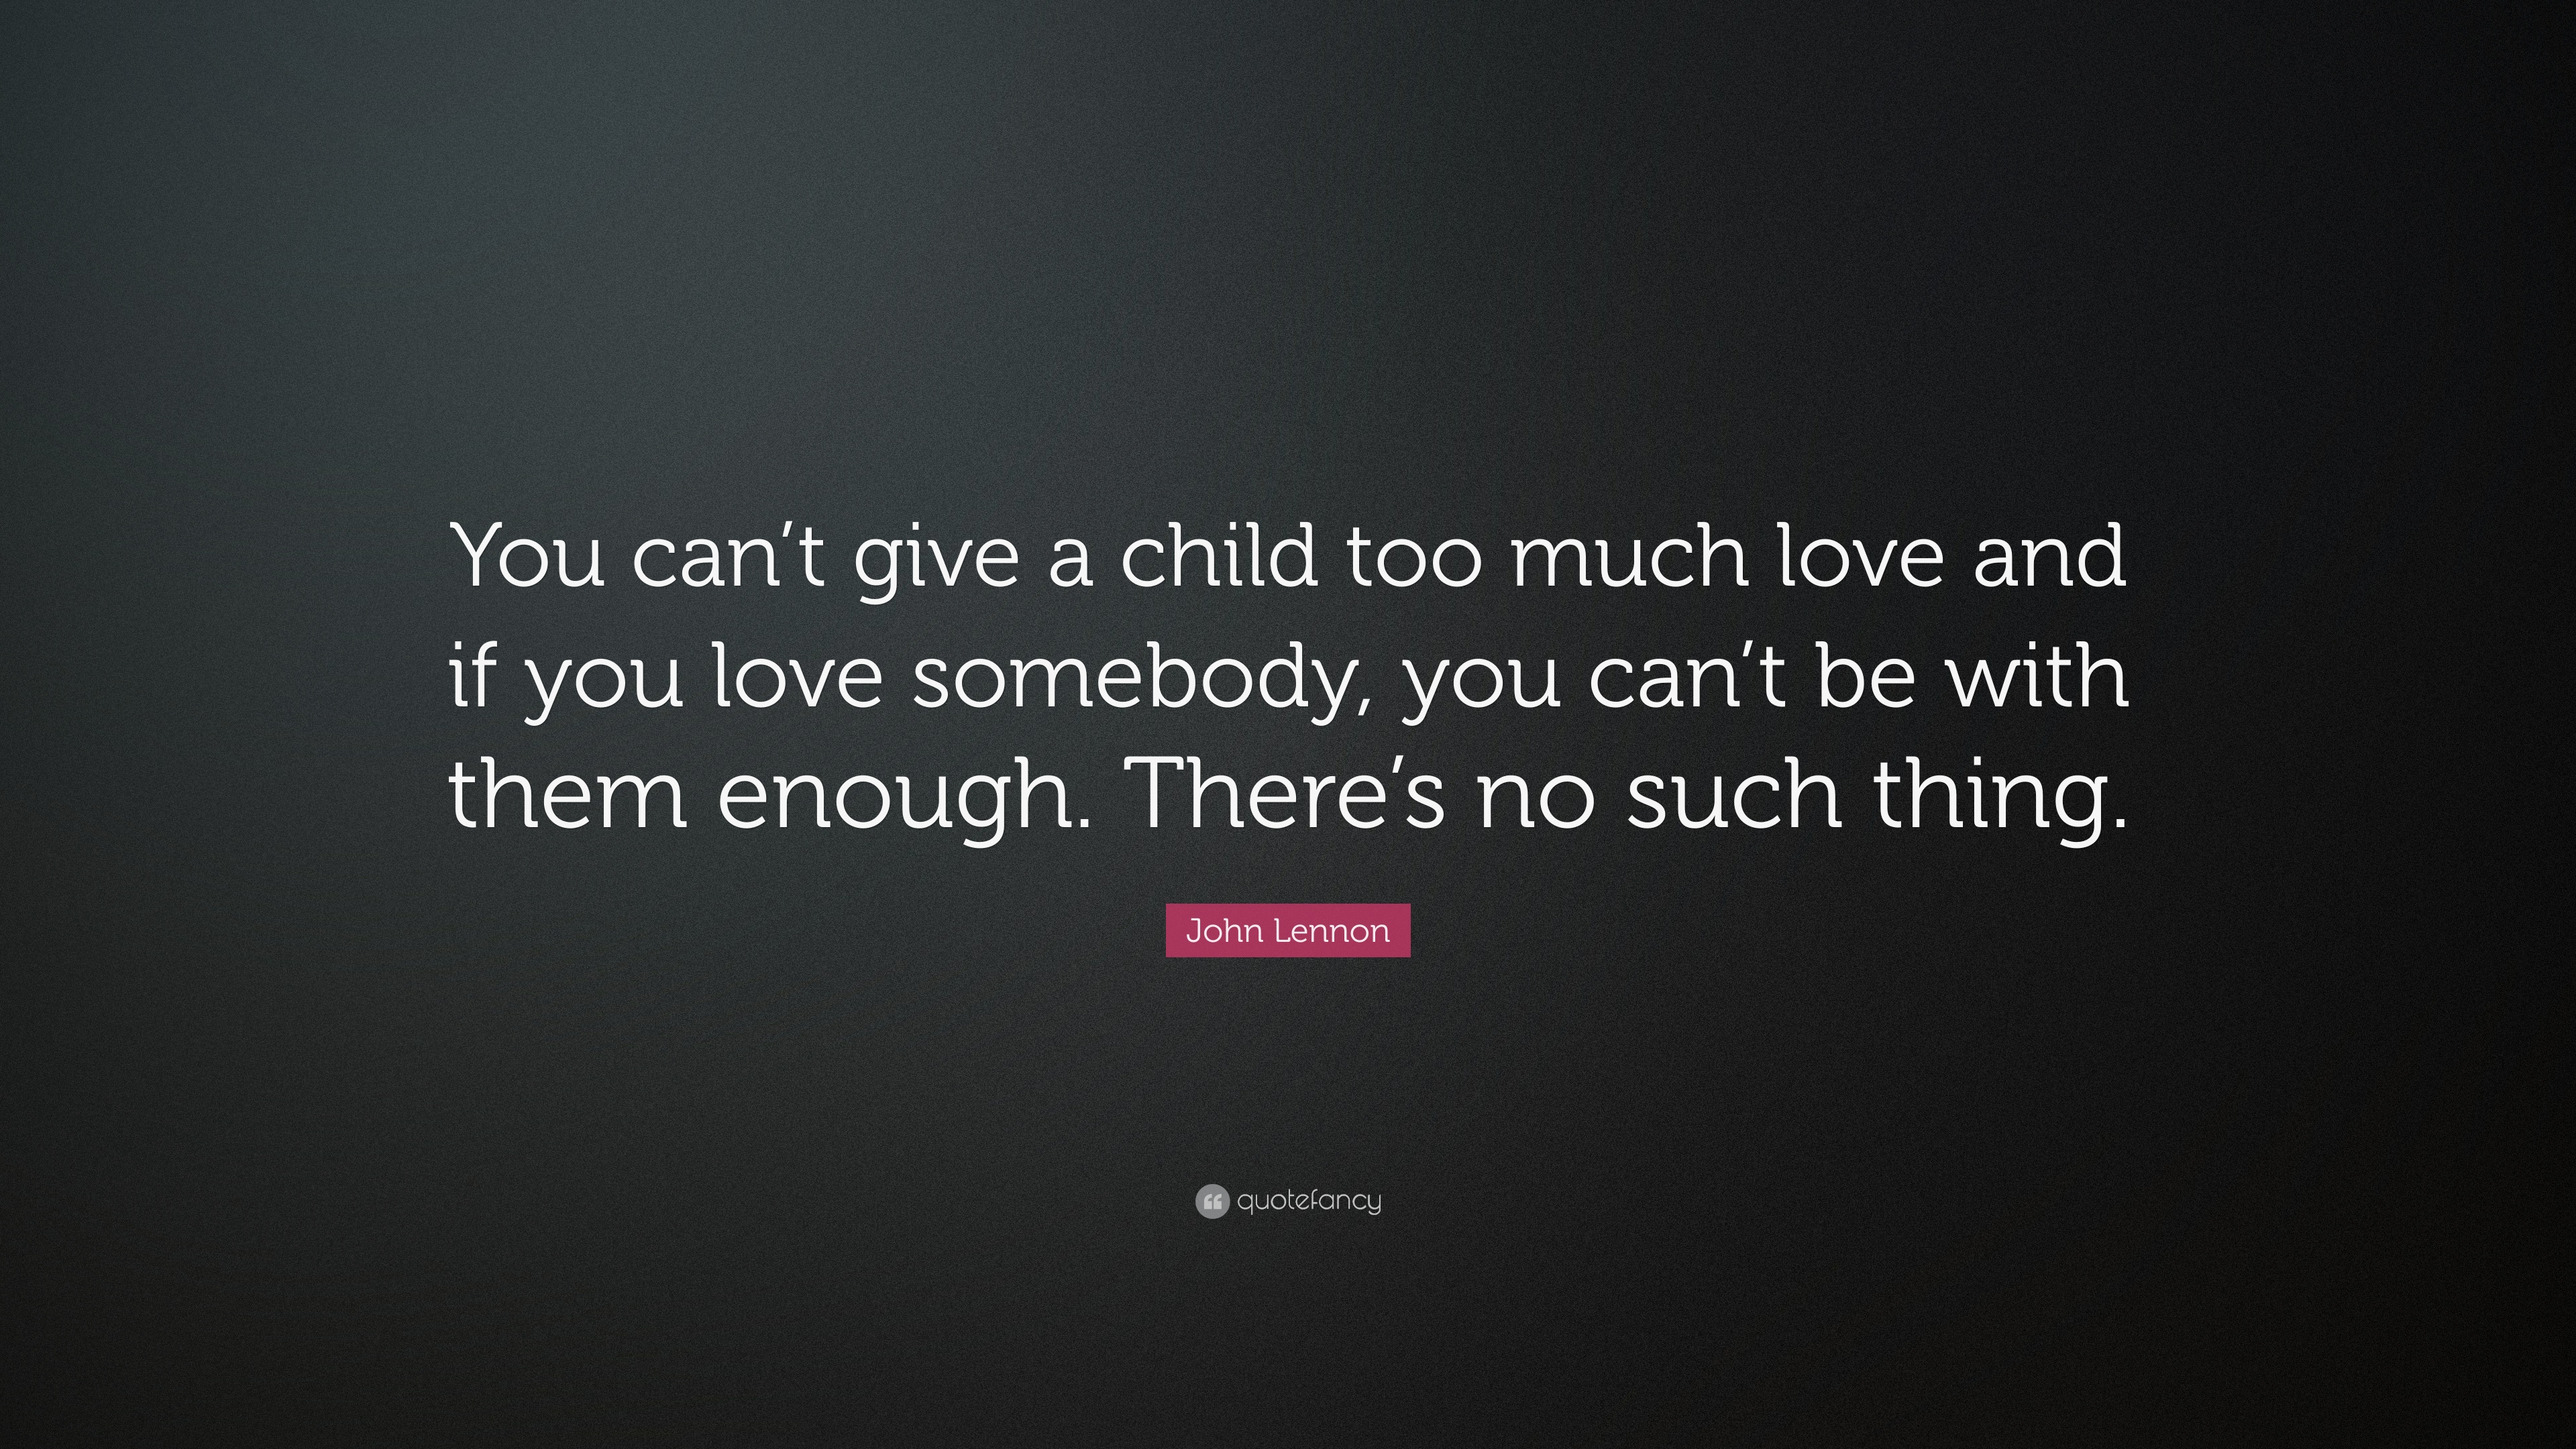 John Lennon Quote You Cant Give A Child Too Much Love And If You